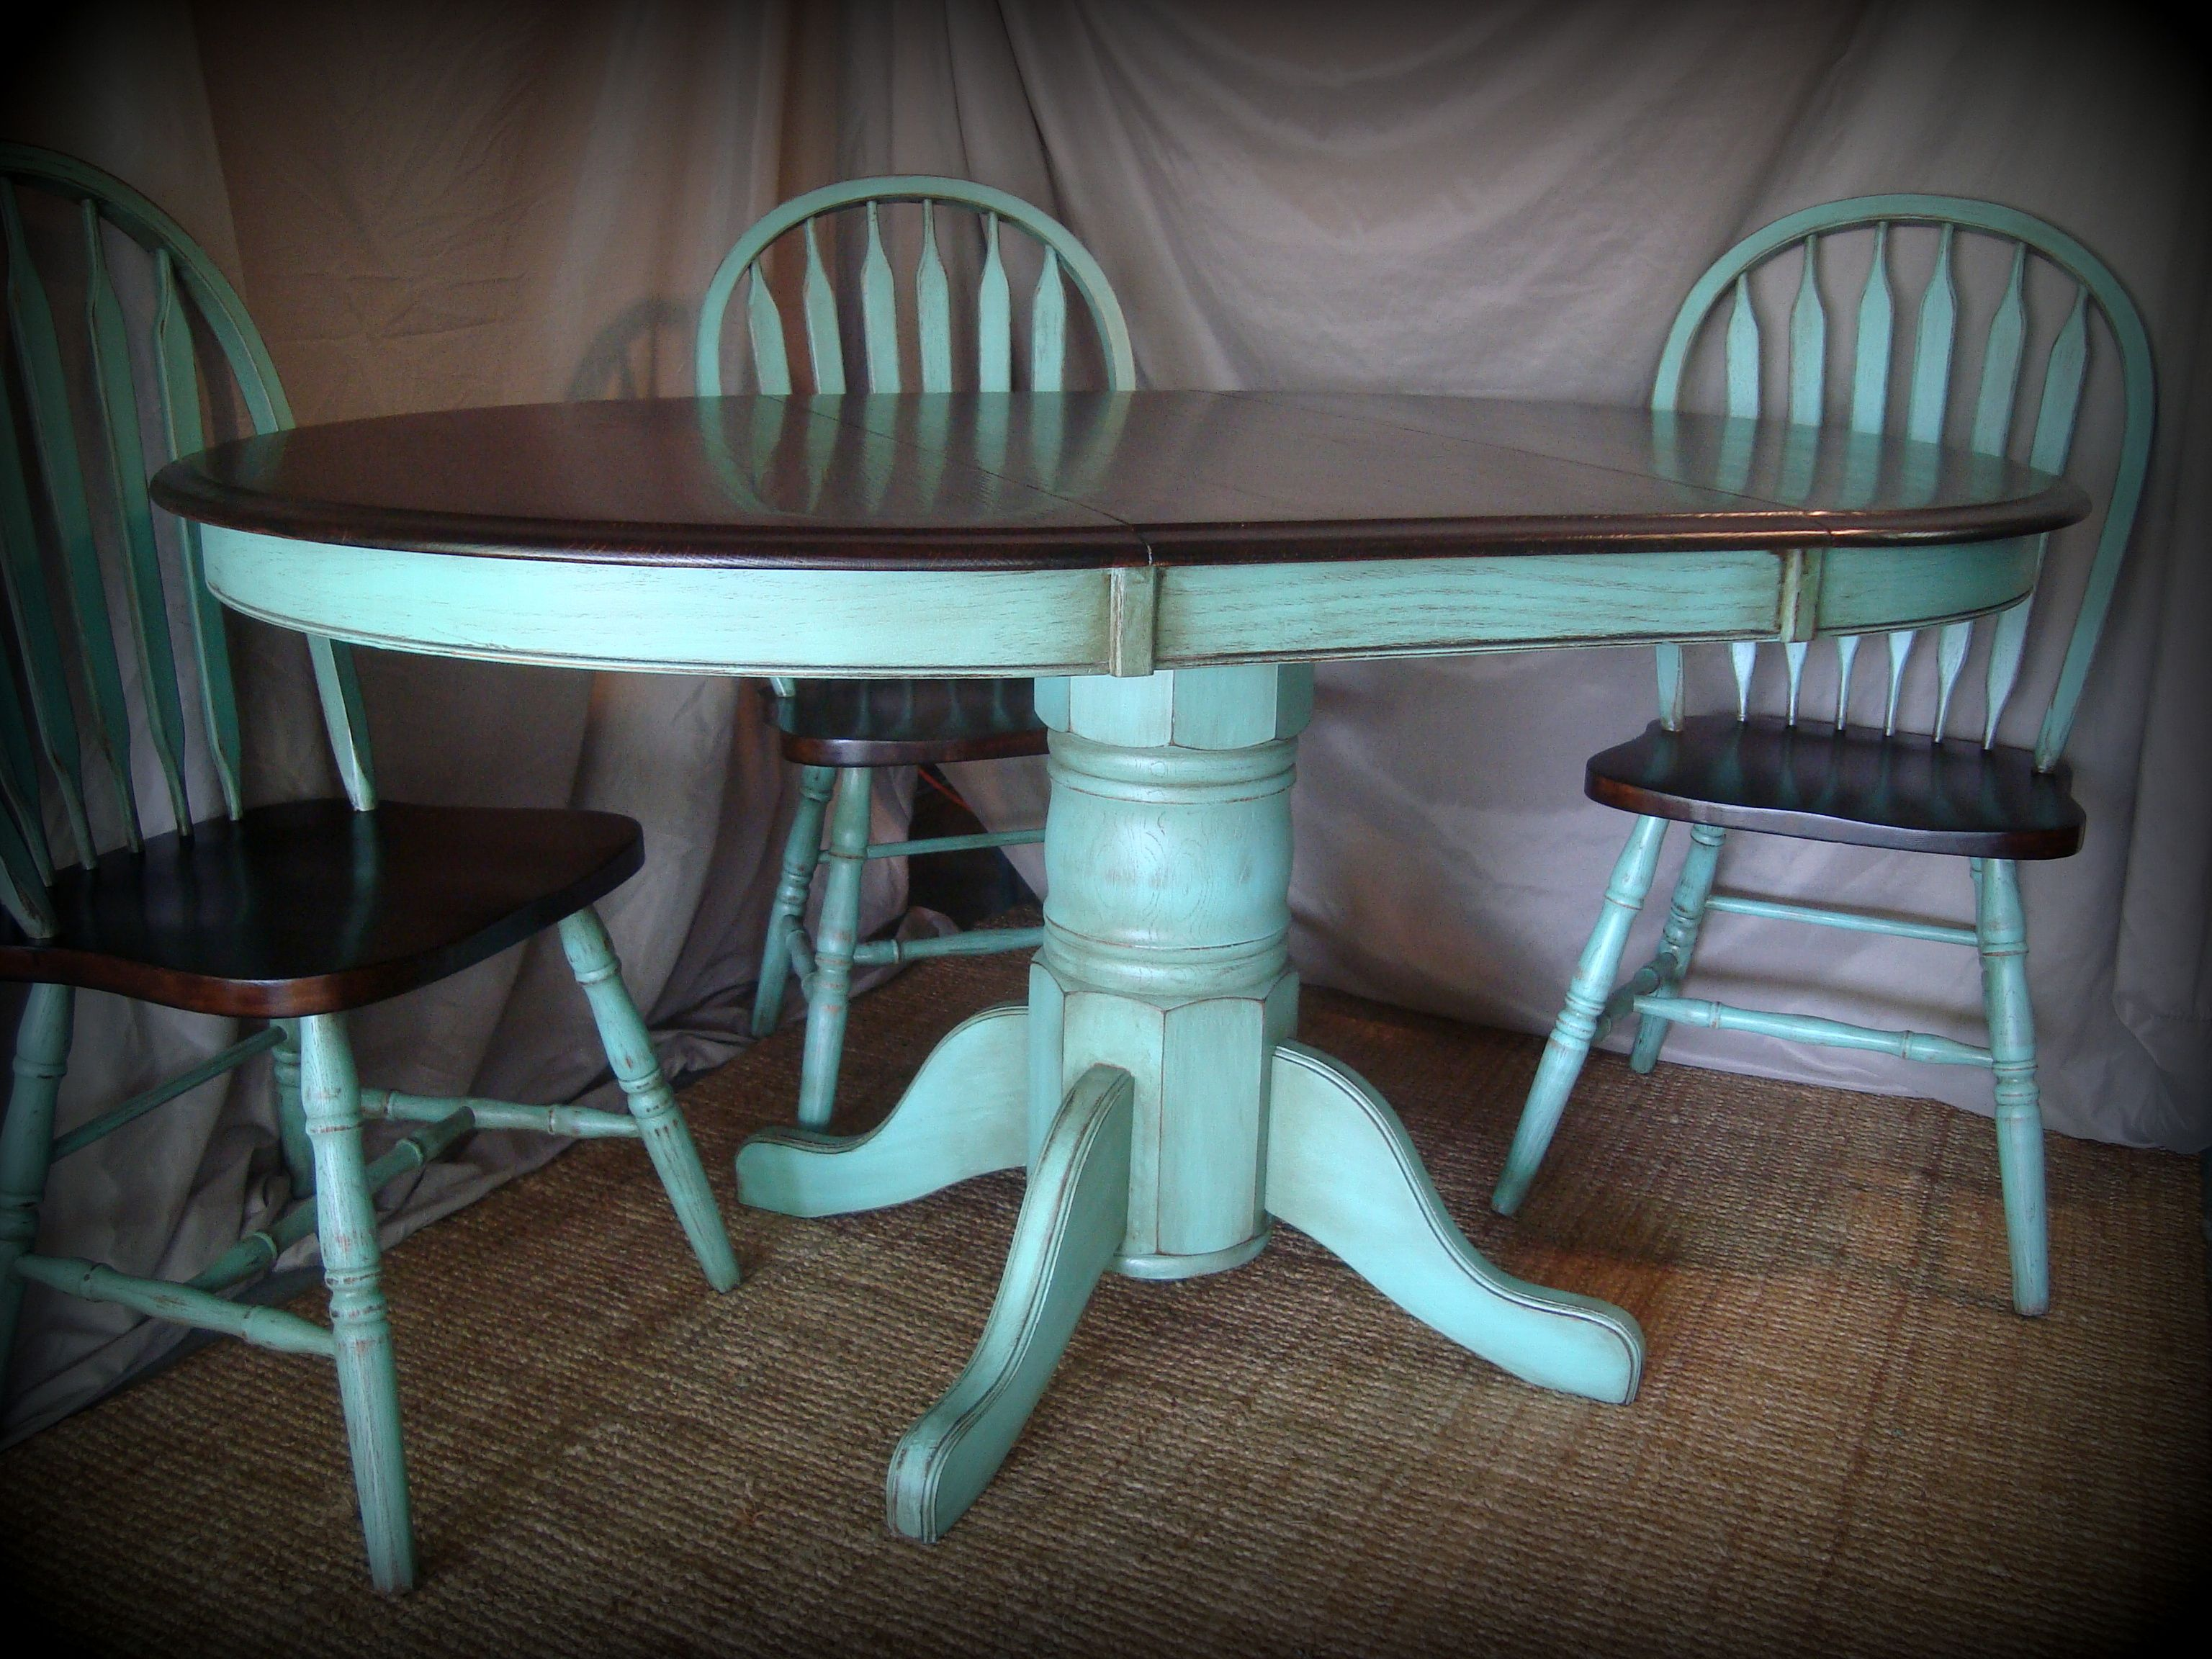 painted kitchen chairs cabinets santa ana ca table refinishing ideas pictures stained the